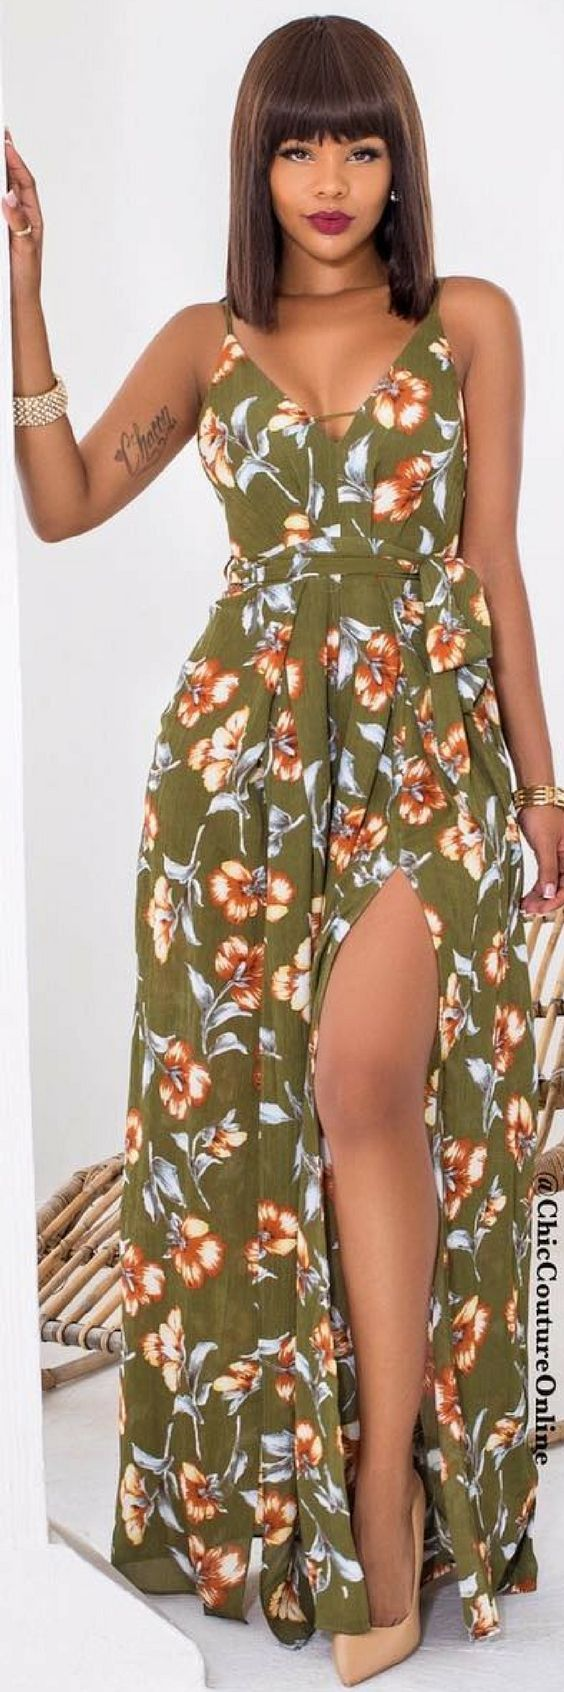 Helah Olive Floral Print Slit Legs Jumpsuit - Fall Outfit Idea by Reyna Love